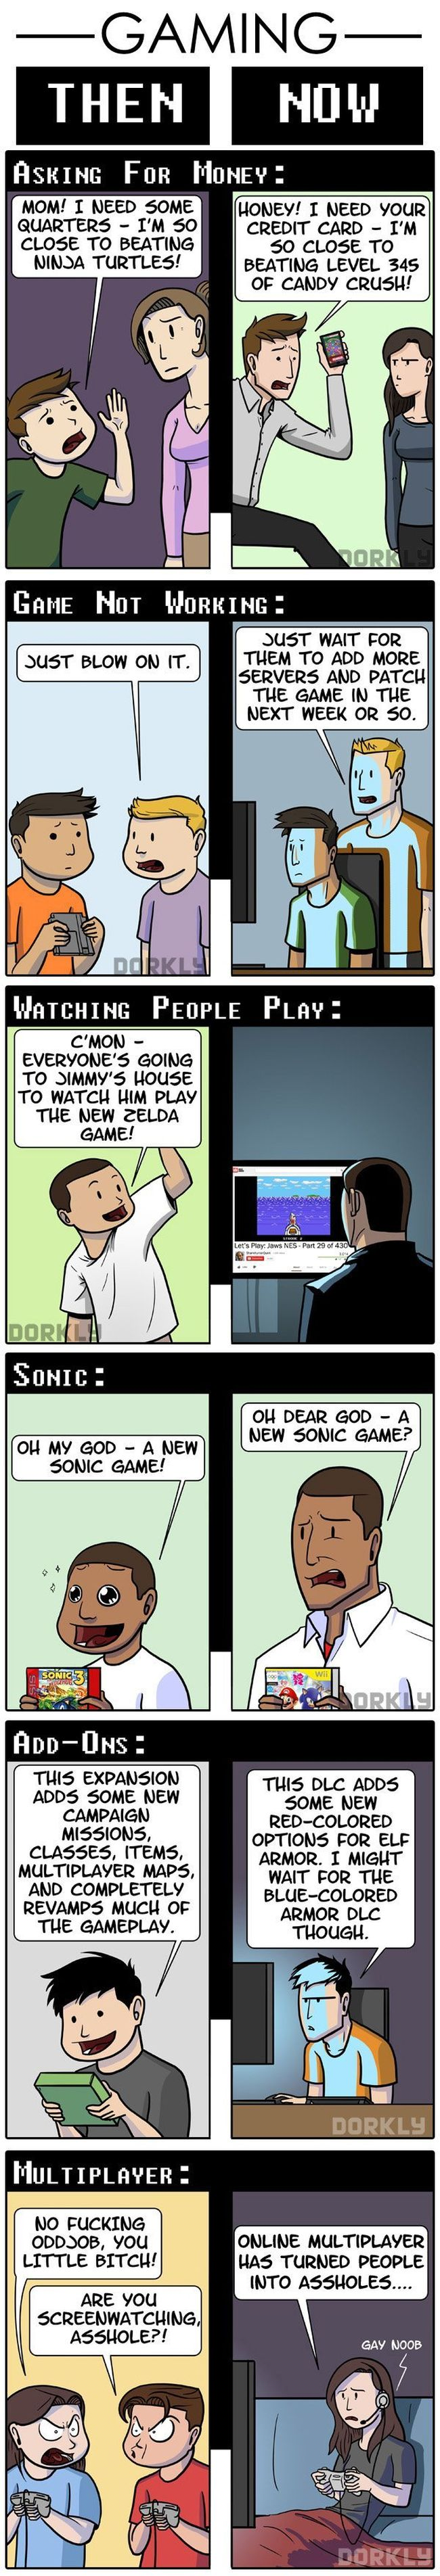 Gaming Then and Now, part 2